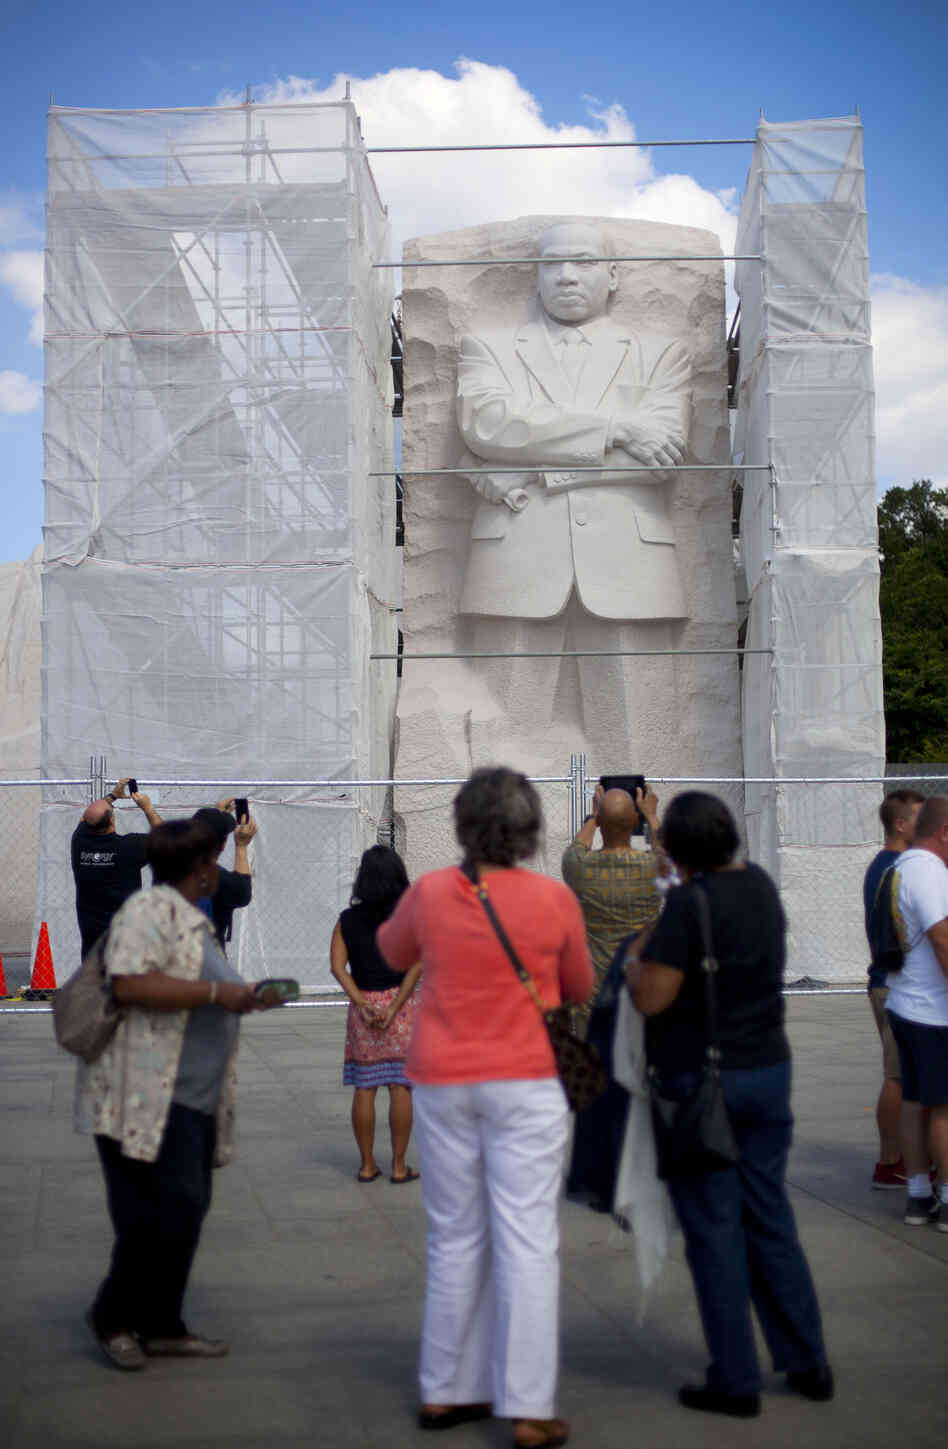 Under Construction: A recent survey of Americans found that fewer than half believe the U.S. has made substantial progress toward racial equality. Here, the Martin Luther King Jr. Memorial in Washington, D.C., is boxed in by scaffolding as work